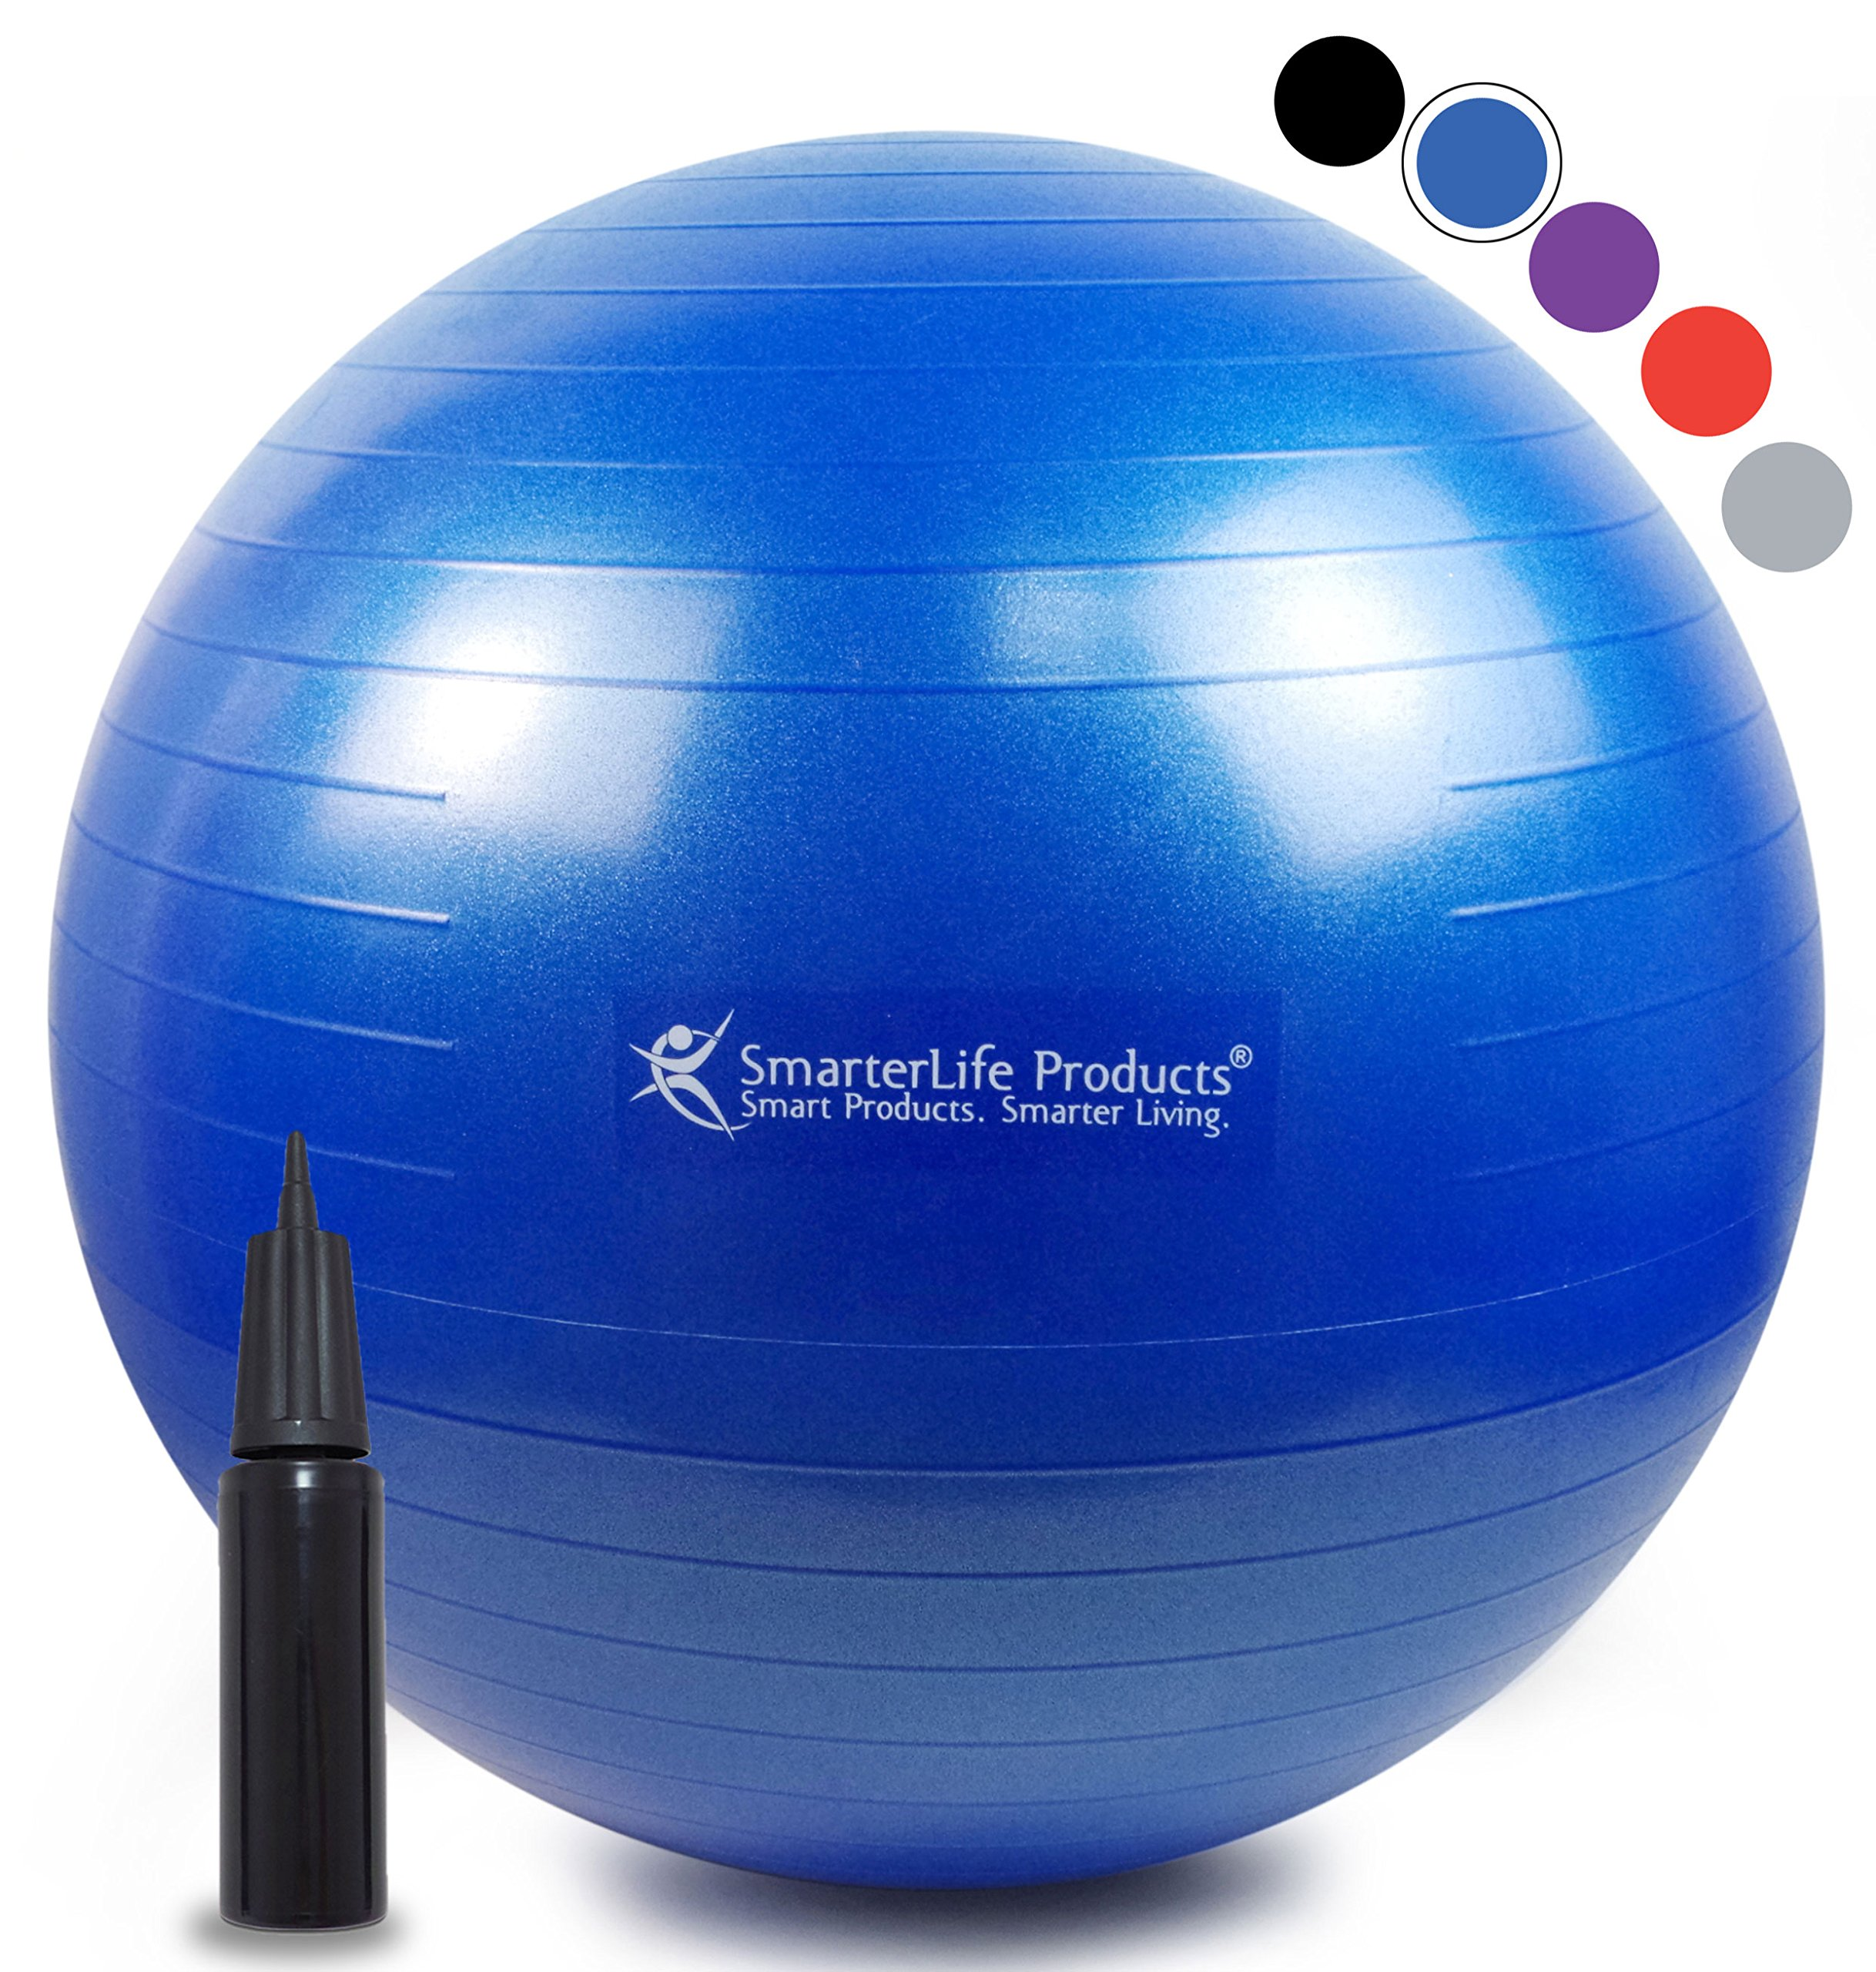 SmarterLife Exercise Ball for Yoga, Balance, Stability, Fitness, Pilates, Birthing, Therapy, Office Chair and Flexible Seating | Anti Burst, Non Slip Design | + Workout Ball Guide (Blue, 65cm)